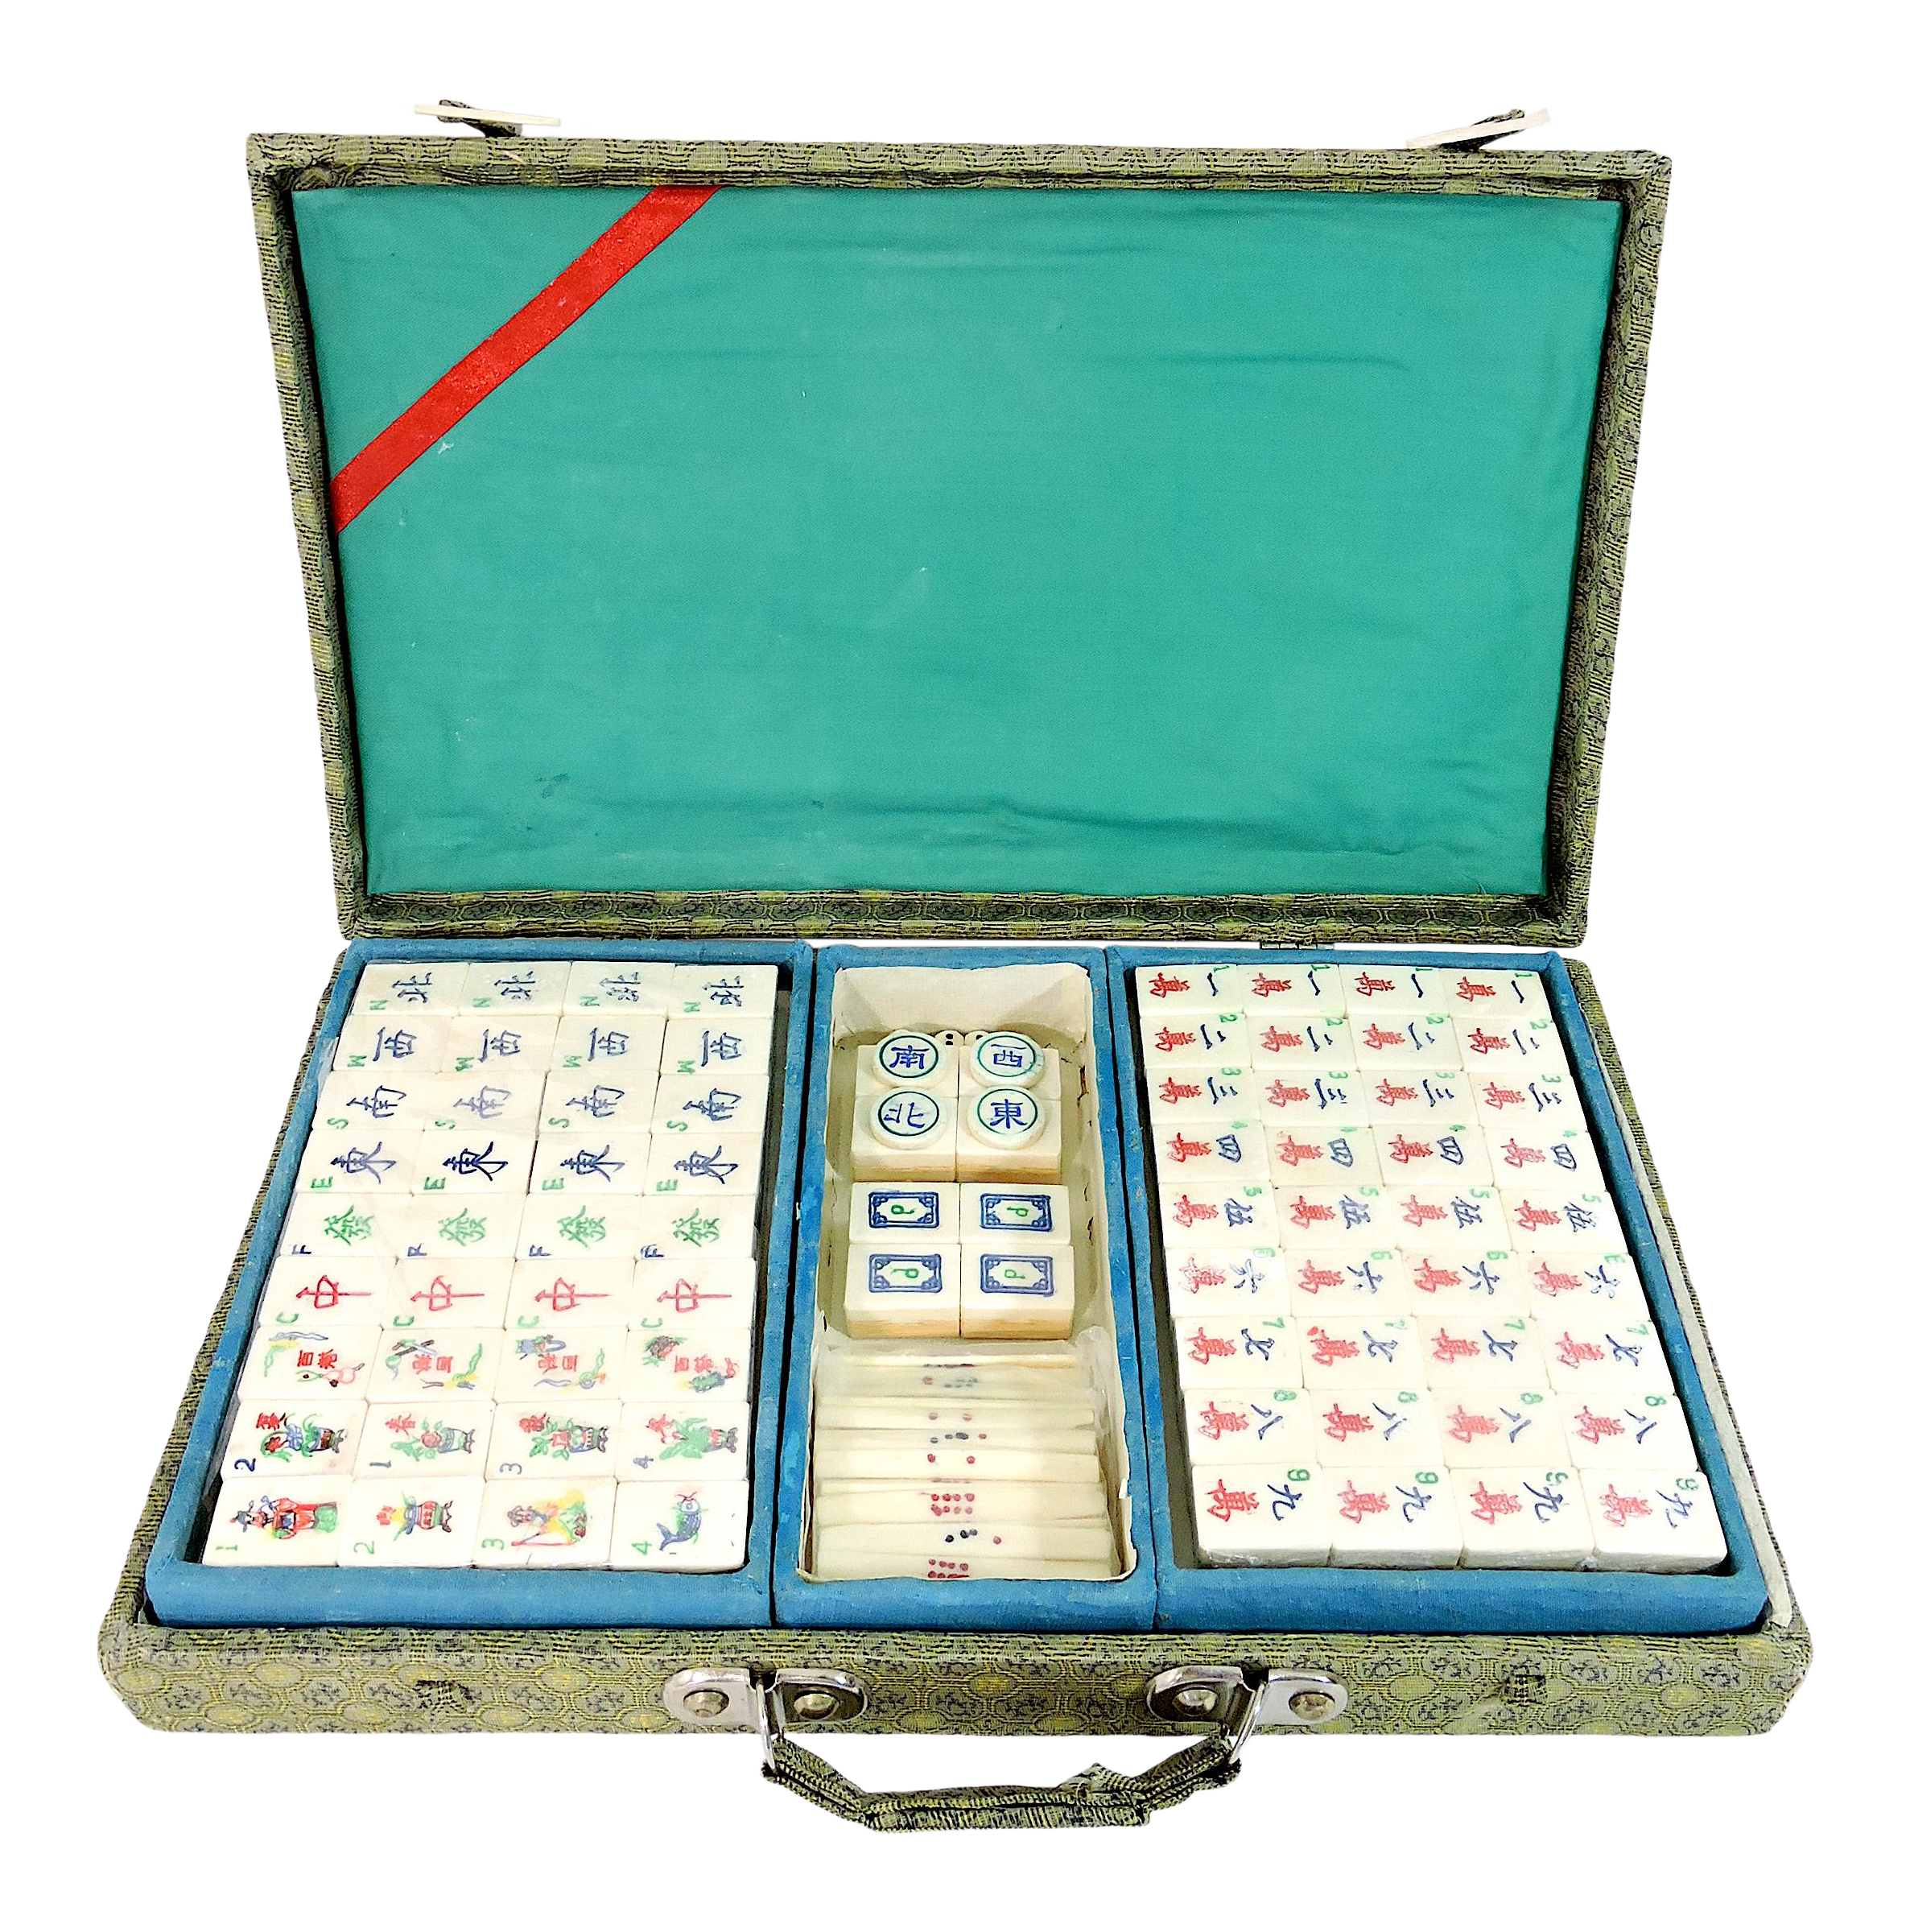 Vintage Chinese Bamboo Mahjong Game Set in Brocade Fabric